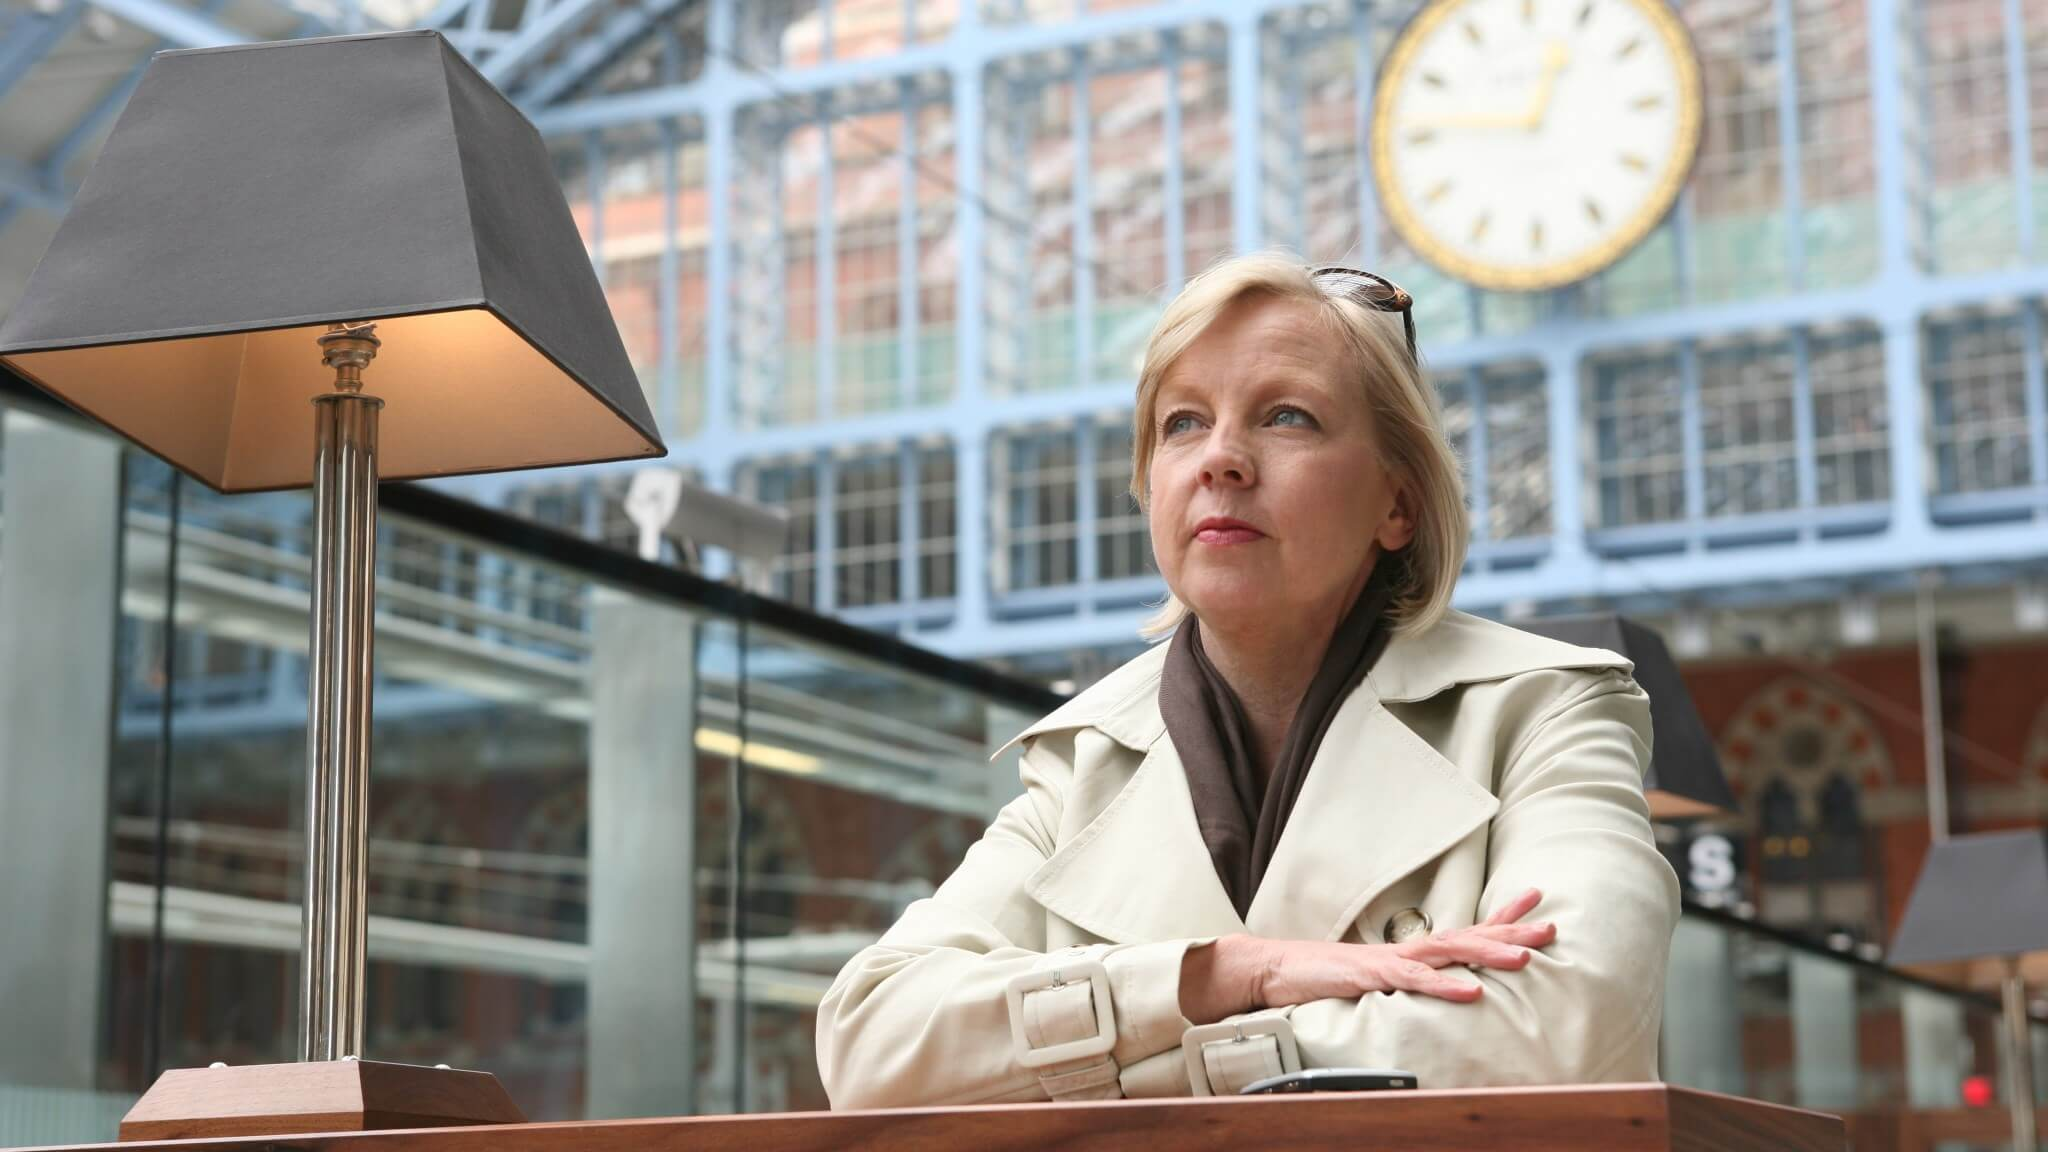 Deborah Meaden's 29 Businesses And Counting